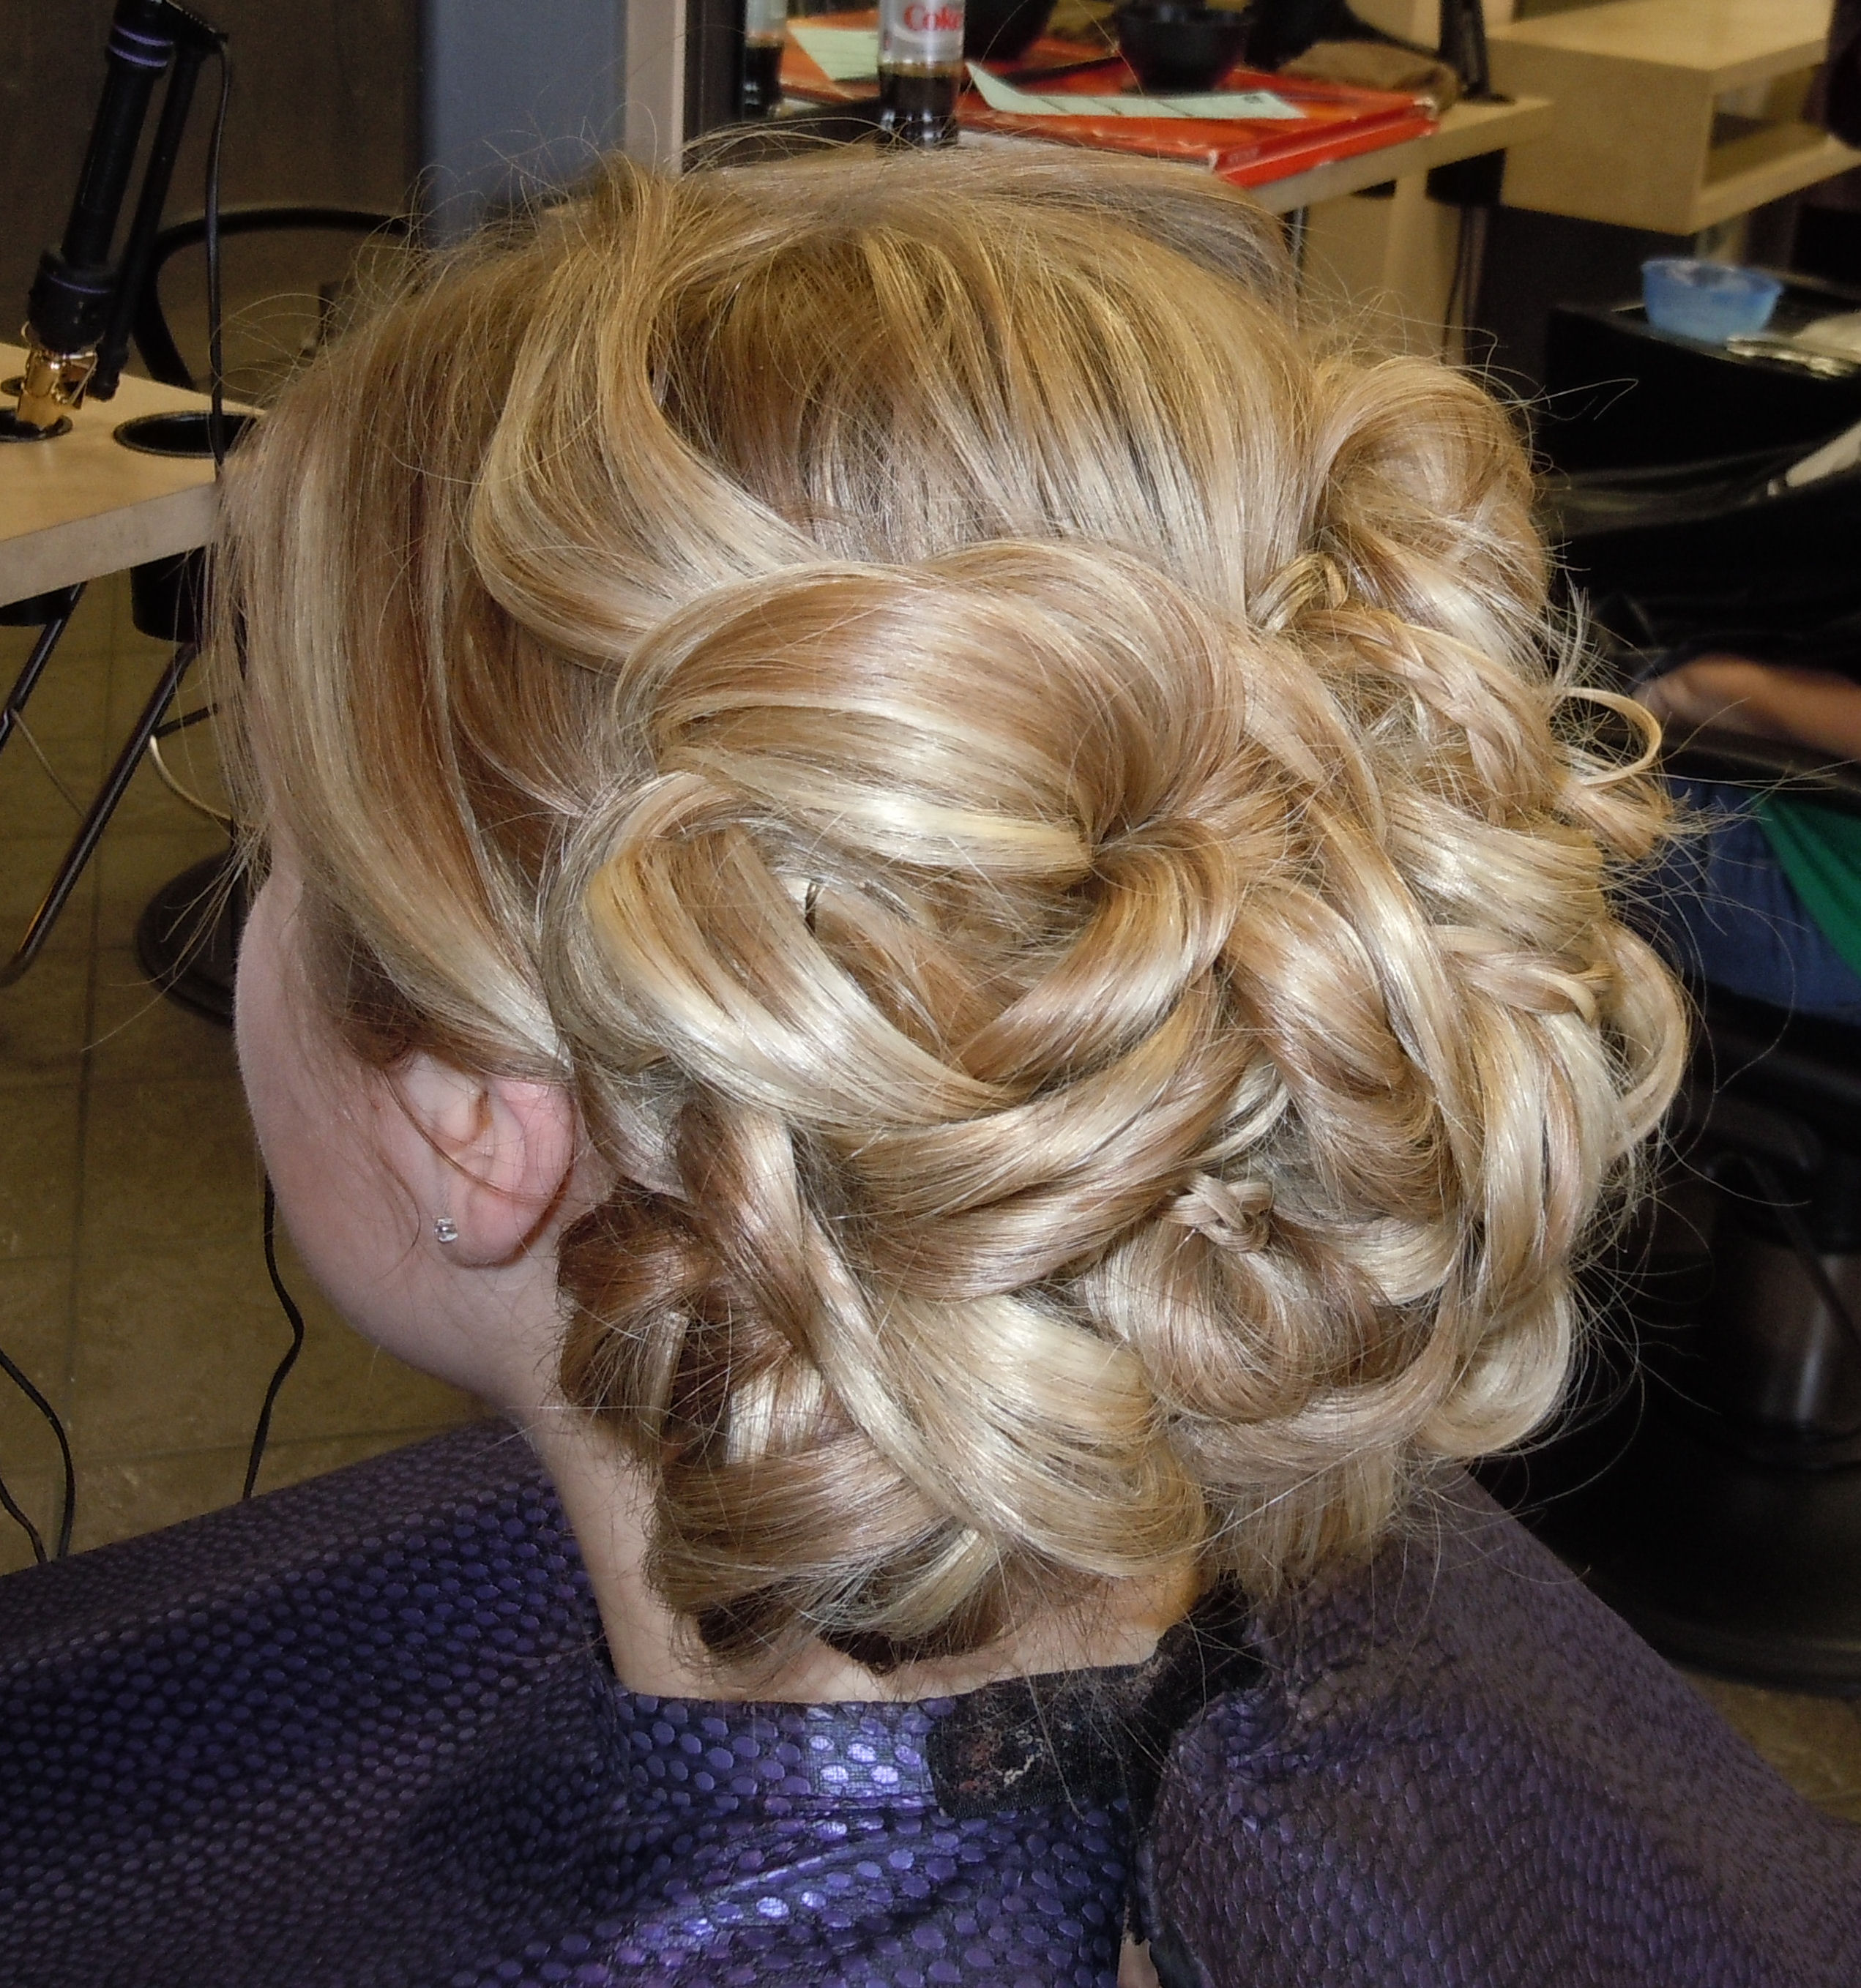 Awesome bun hairstyle